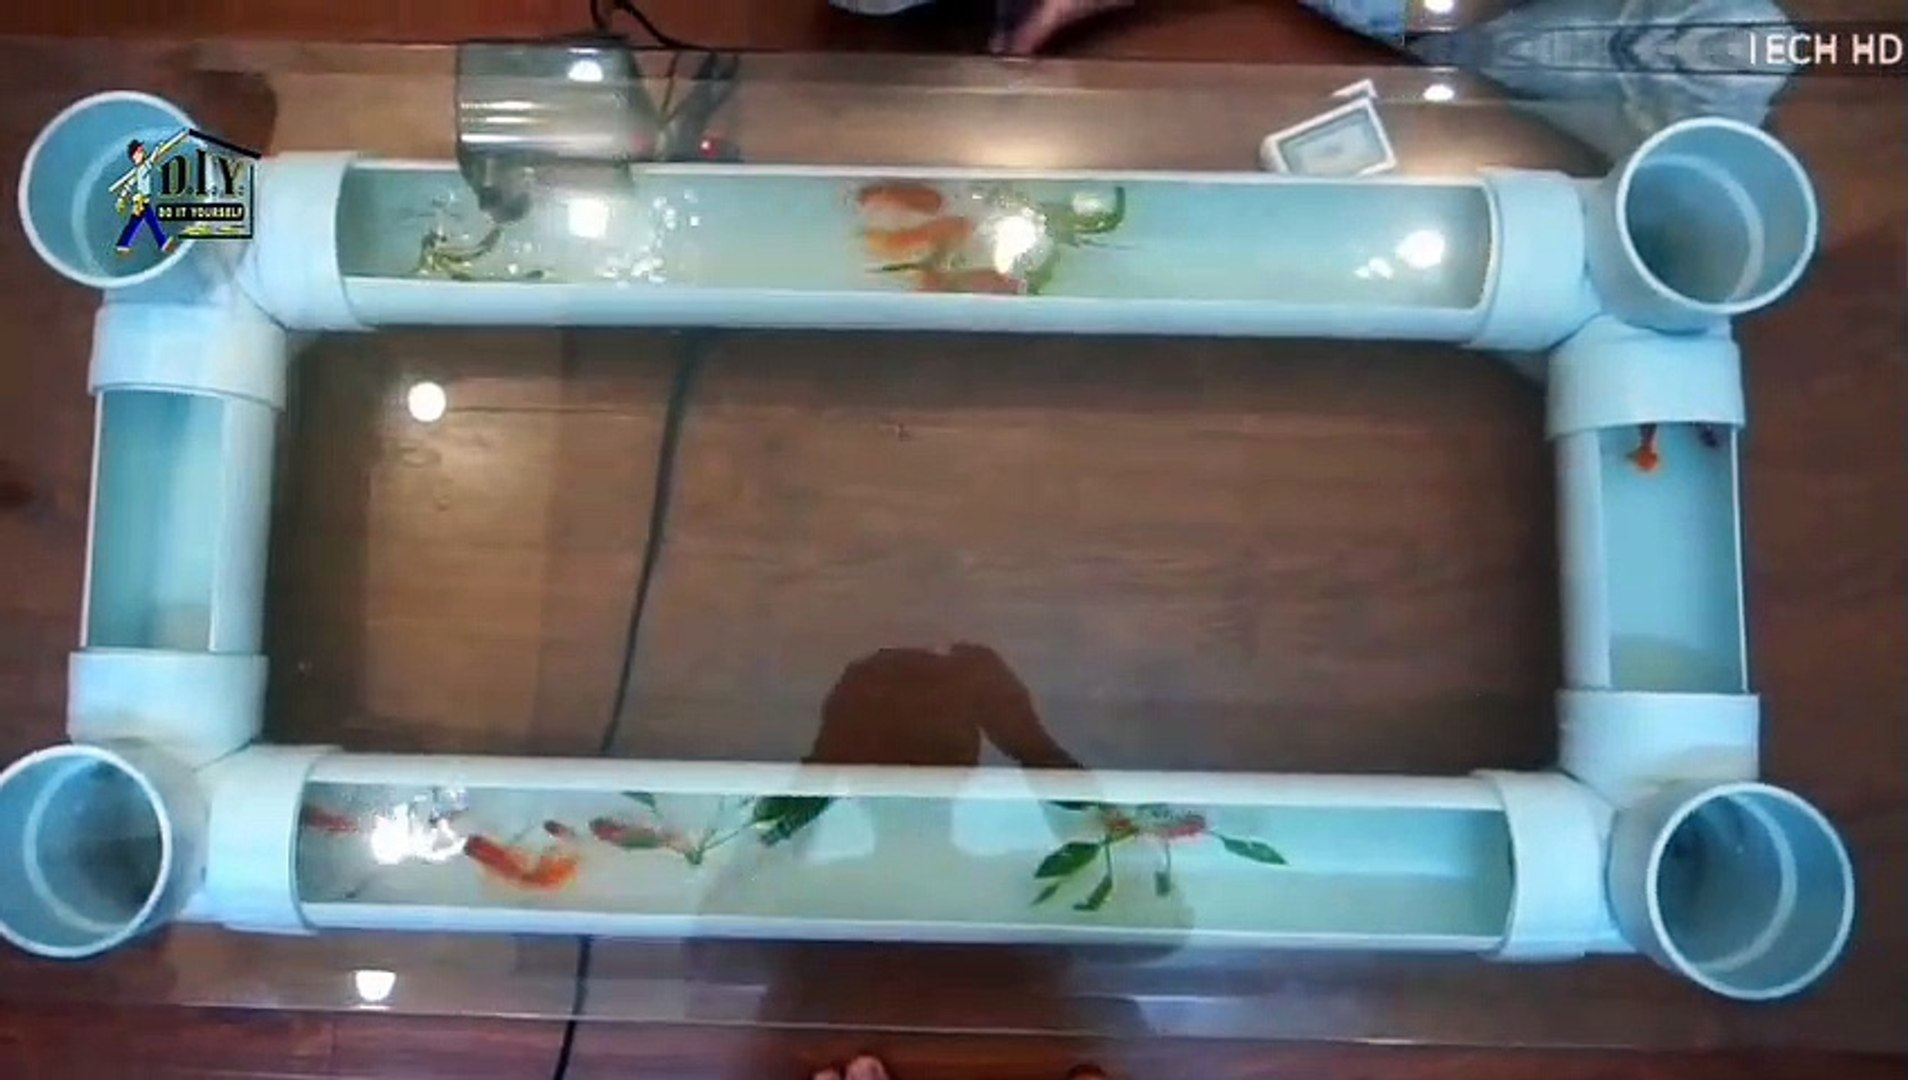 Make A Coffee Table Aquarium Using Pvc Do It Yourself Diy Video Dailymotion